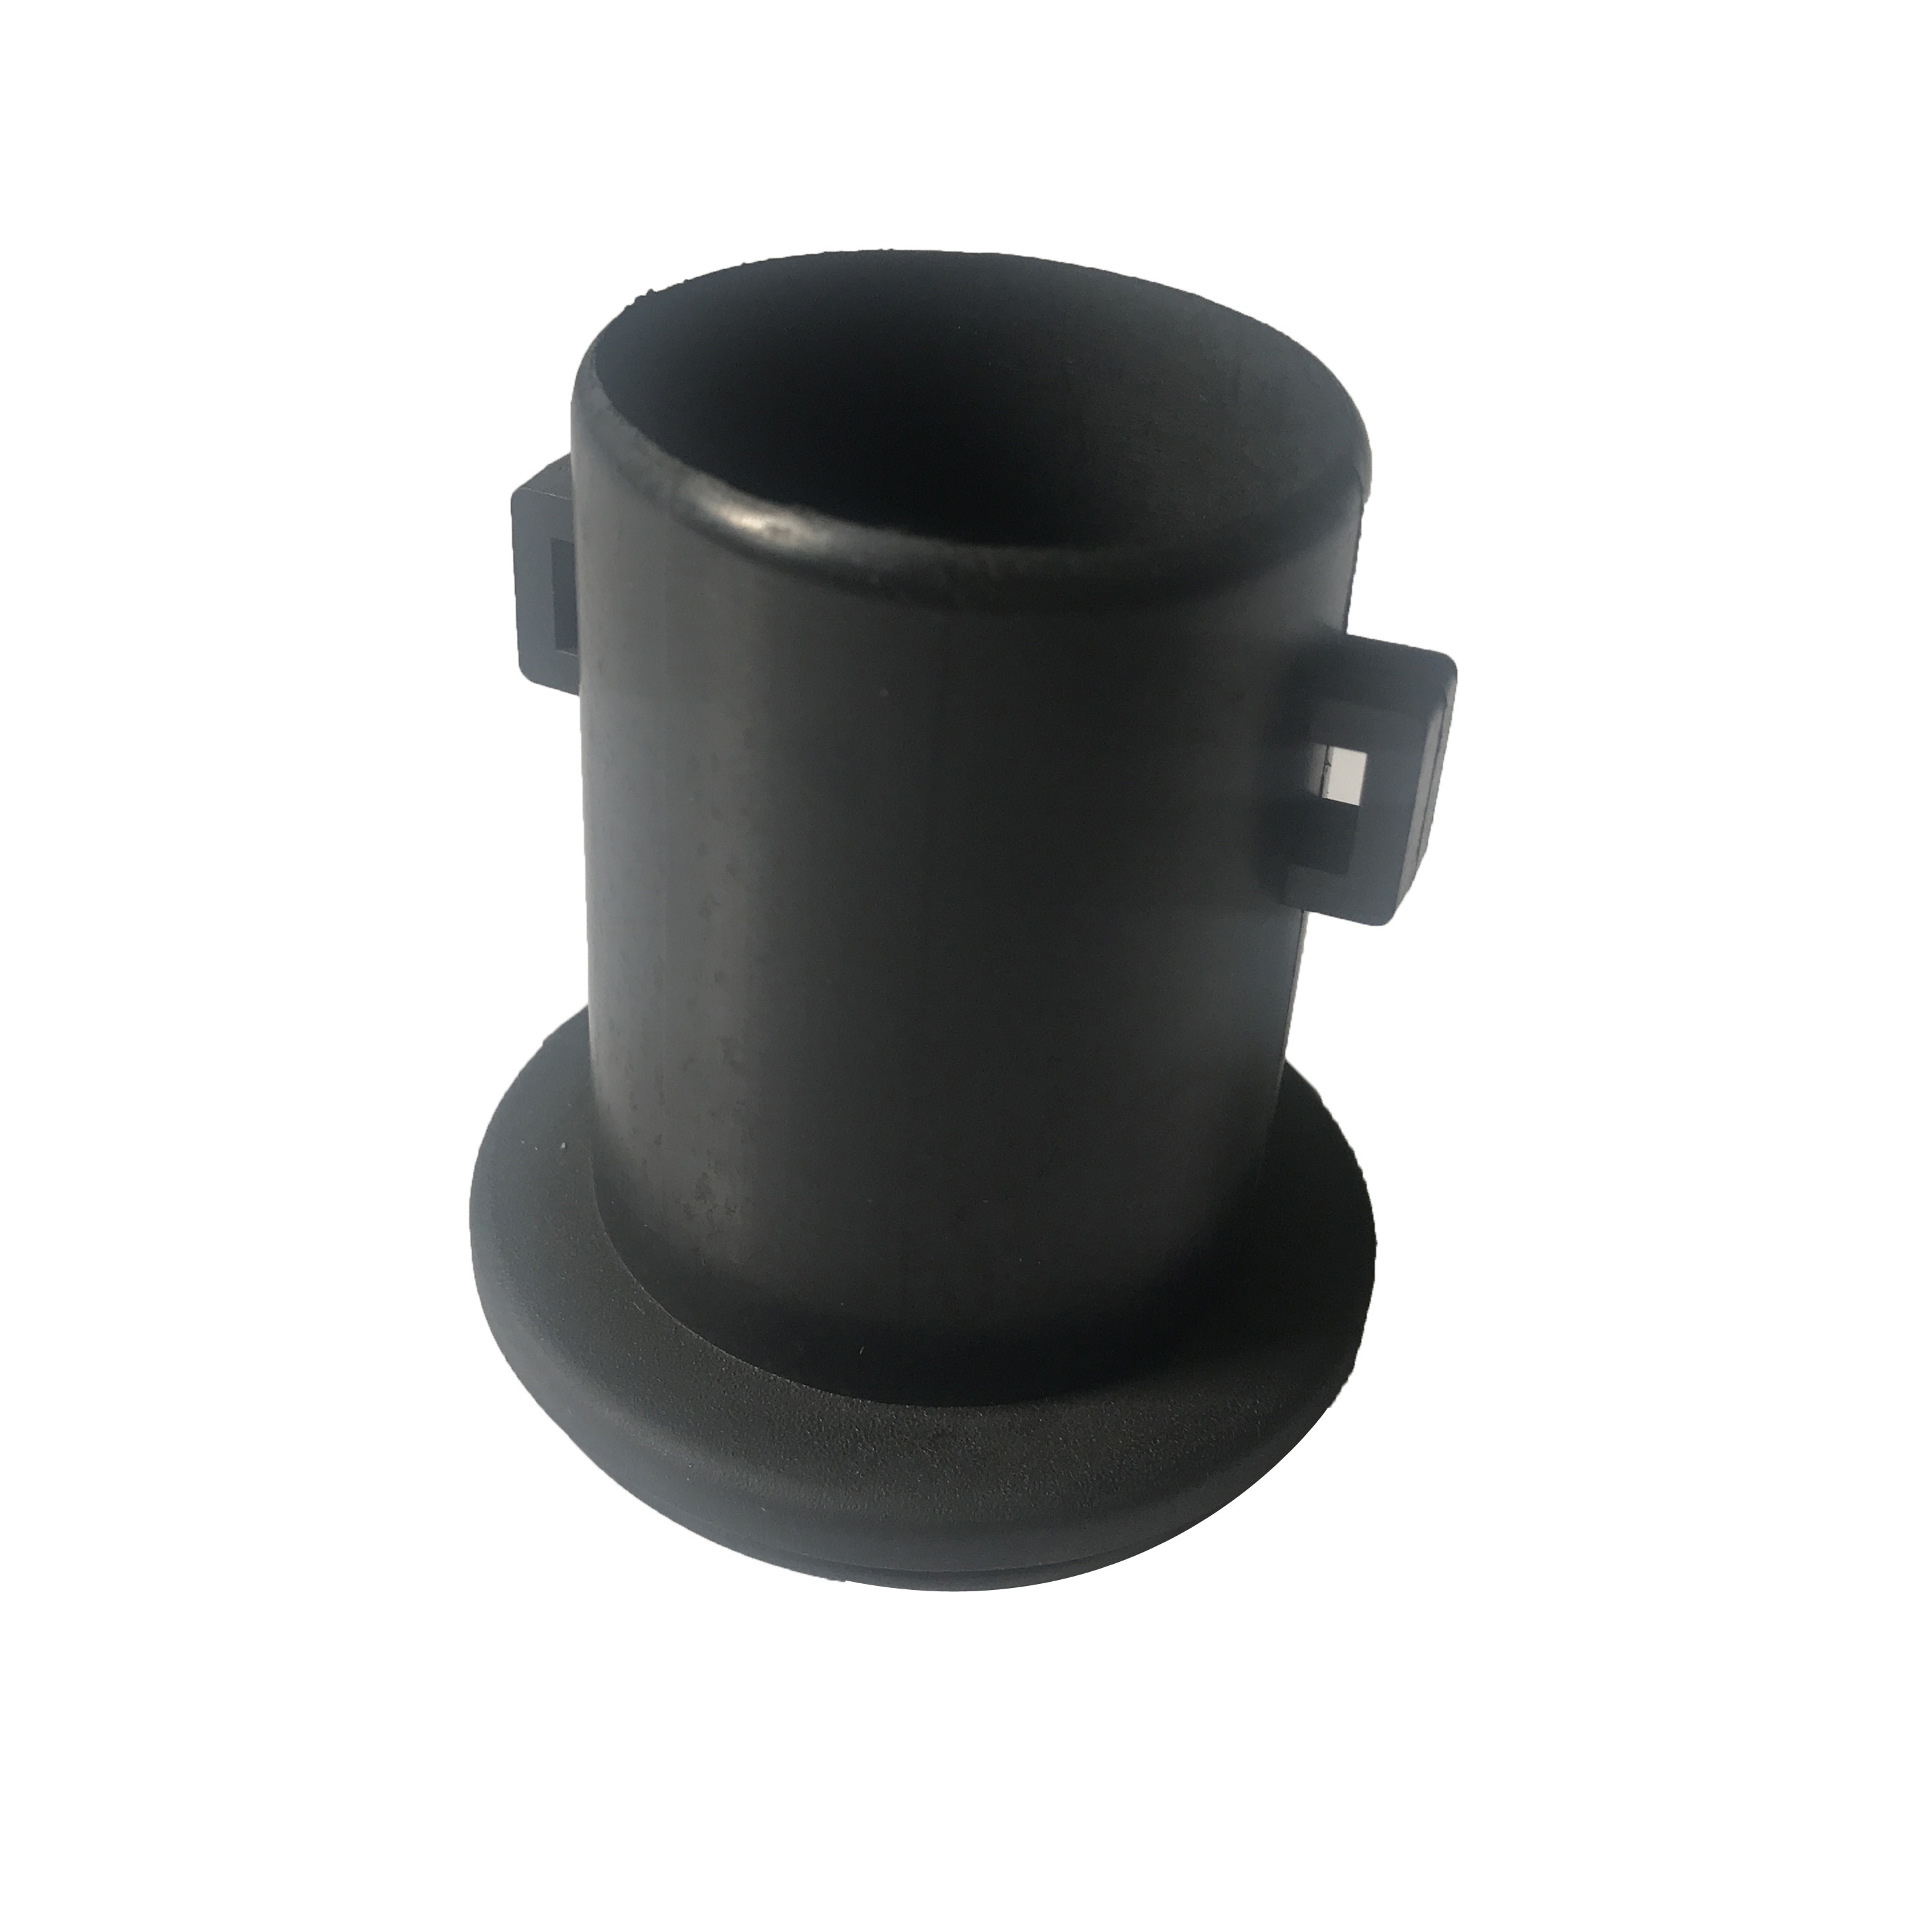 Silicone PVC rubber products pieces High quality OEM design custom silicone molded rubber parts